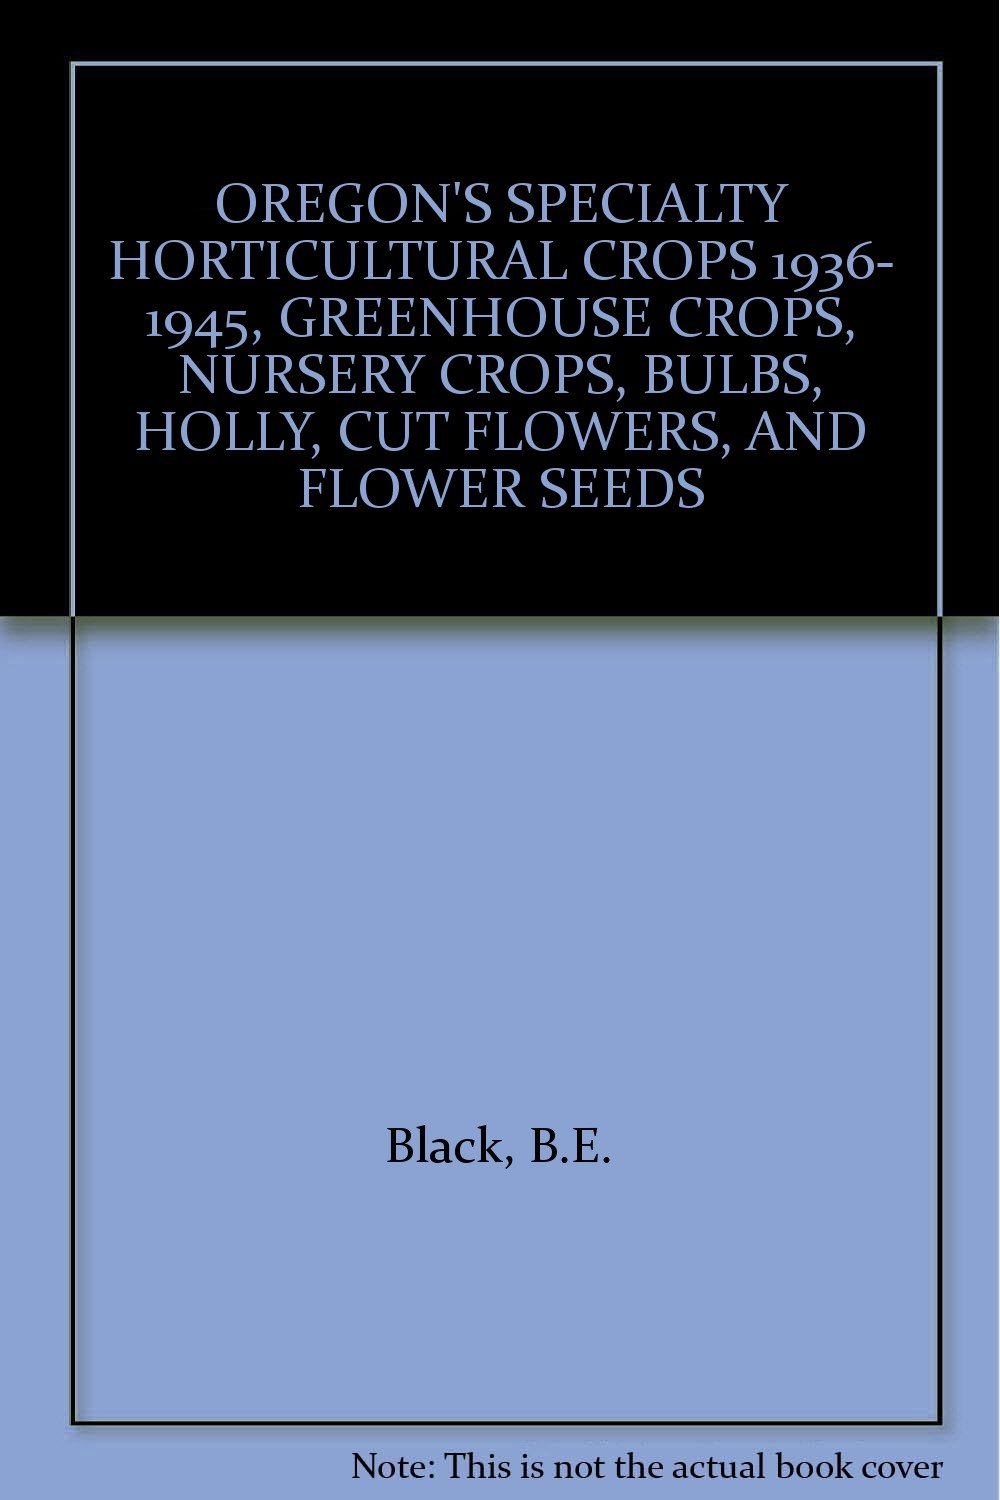 OREGON'S SPECIALTY HORTICULTURAL CROPS 1936- 1945, GREENHOUSE CROPS, NURSERY CROPS, BULBS, HOLLY, CUT FLOWERS, AND FLOWER SEEDS